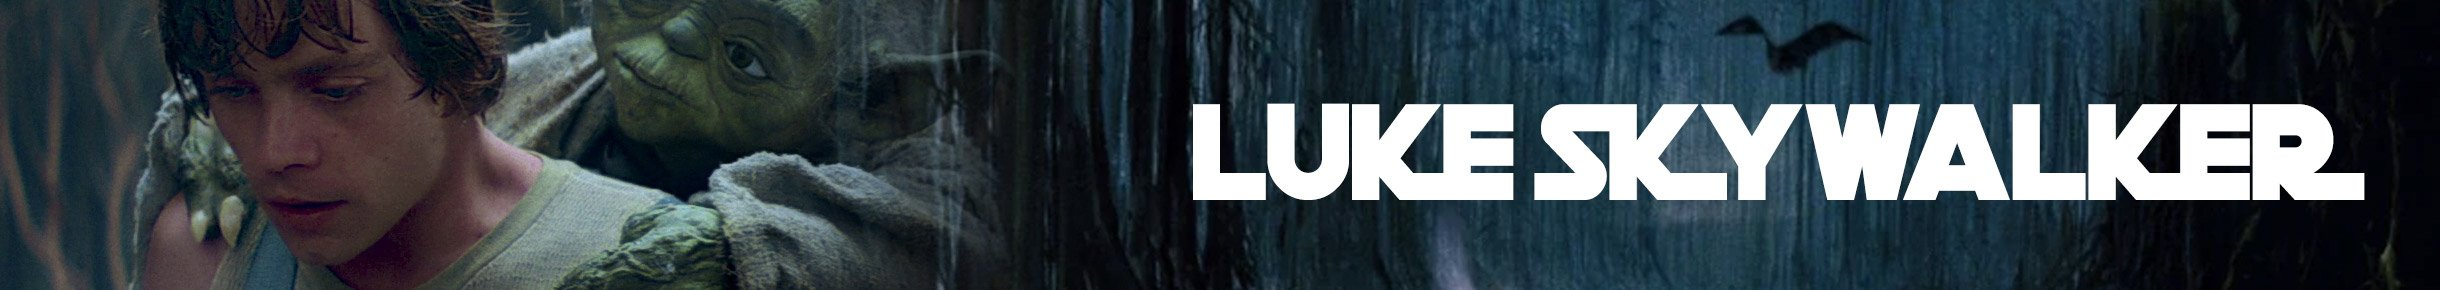 Luke Skywalker Merchandise Banner